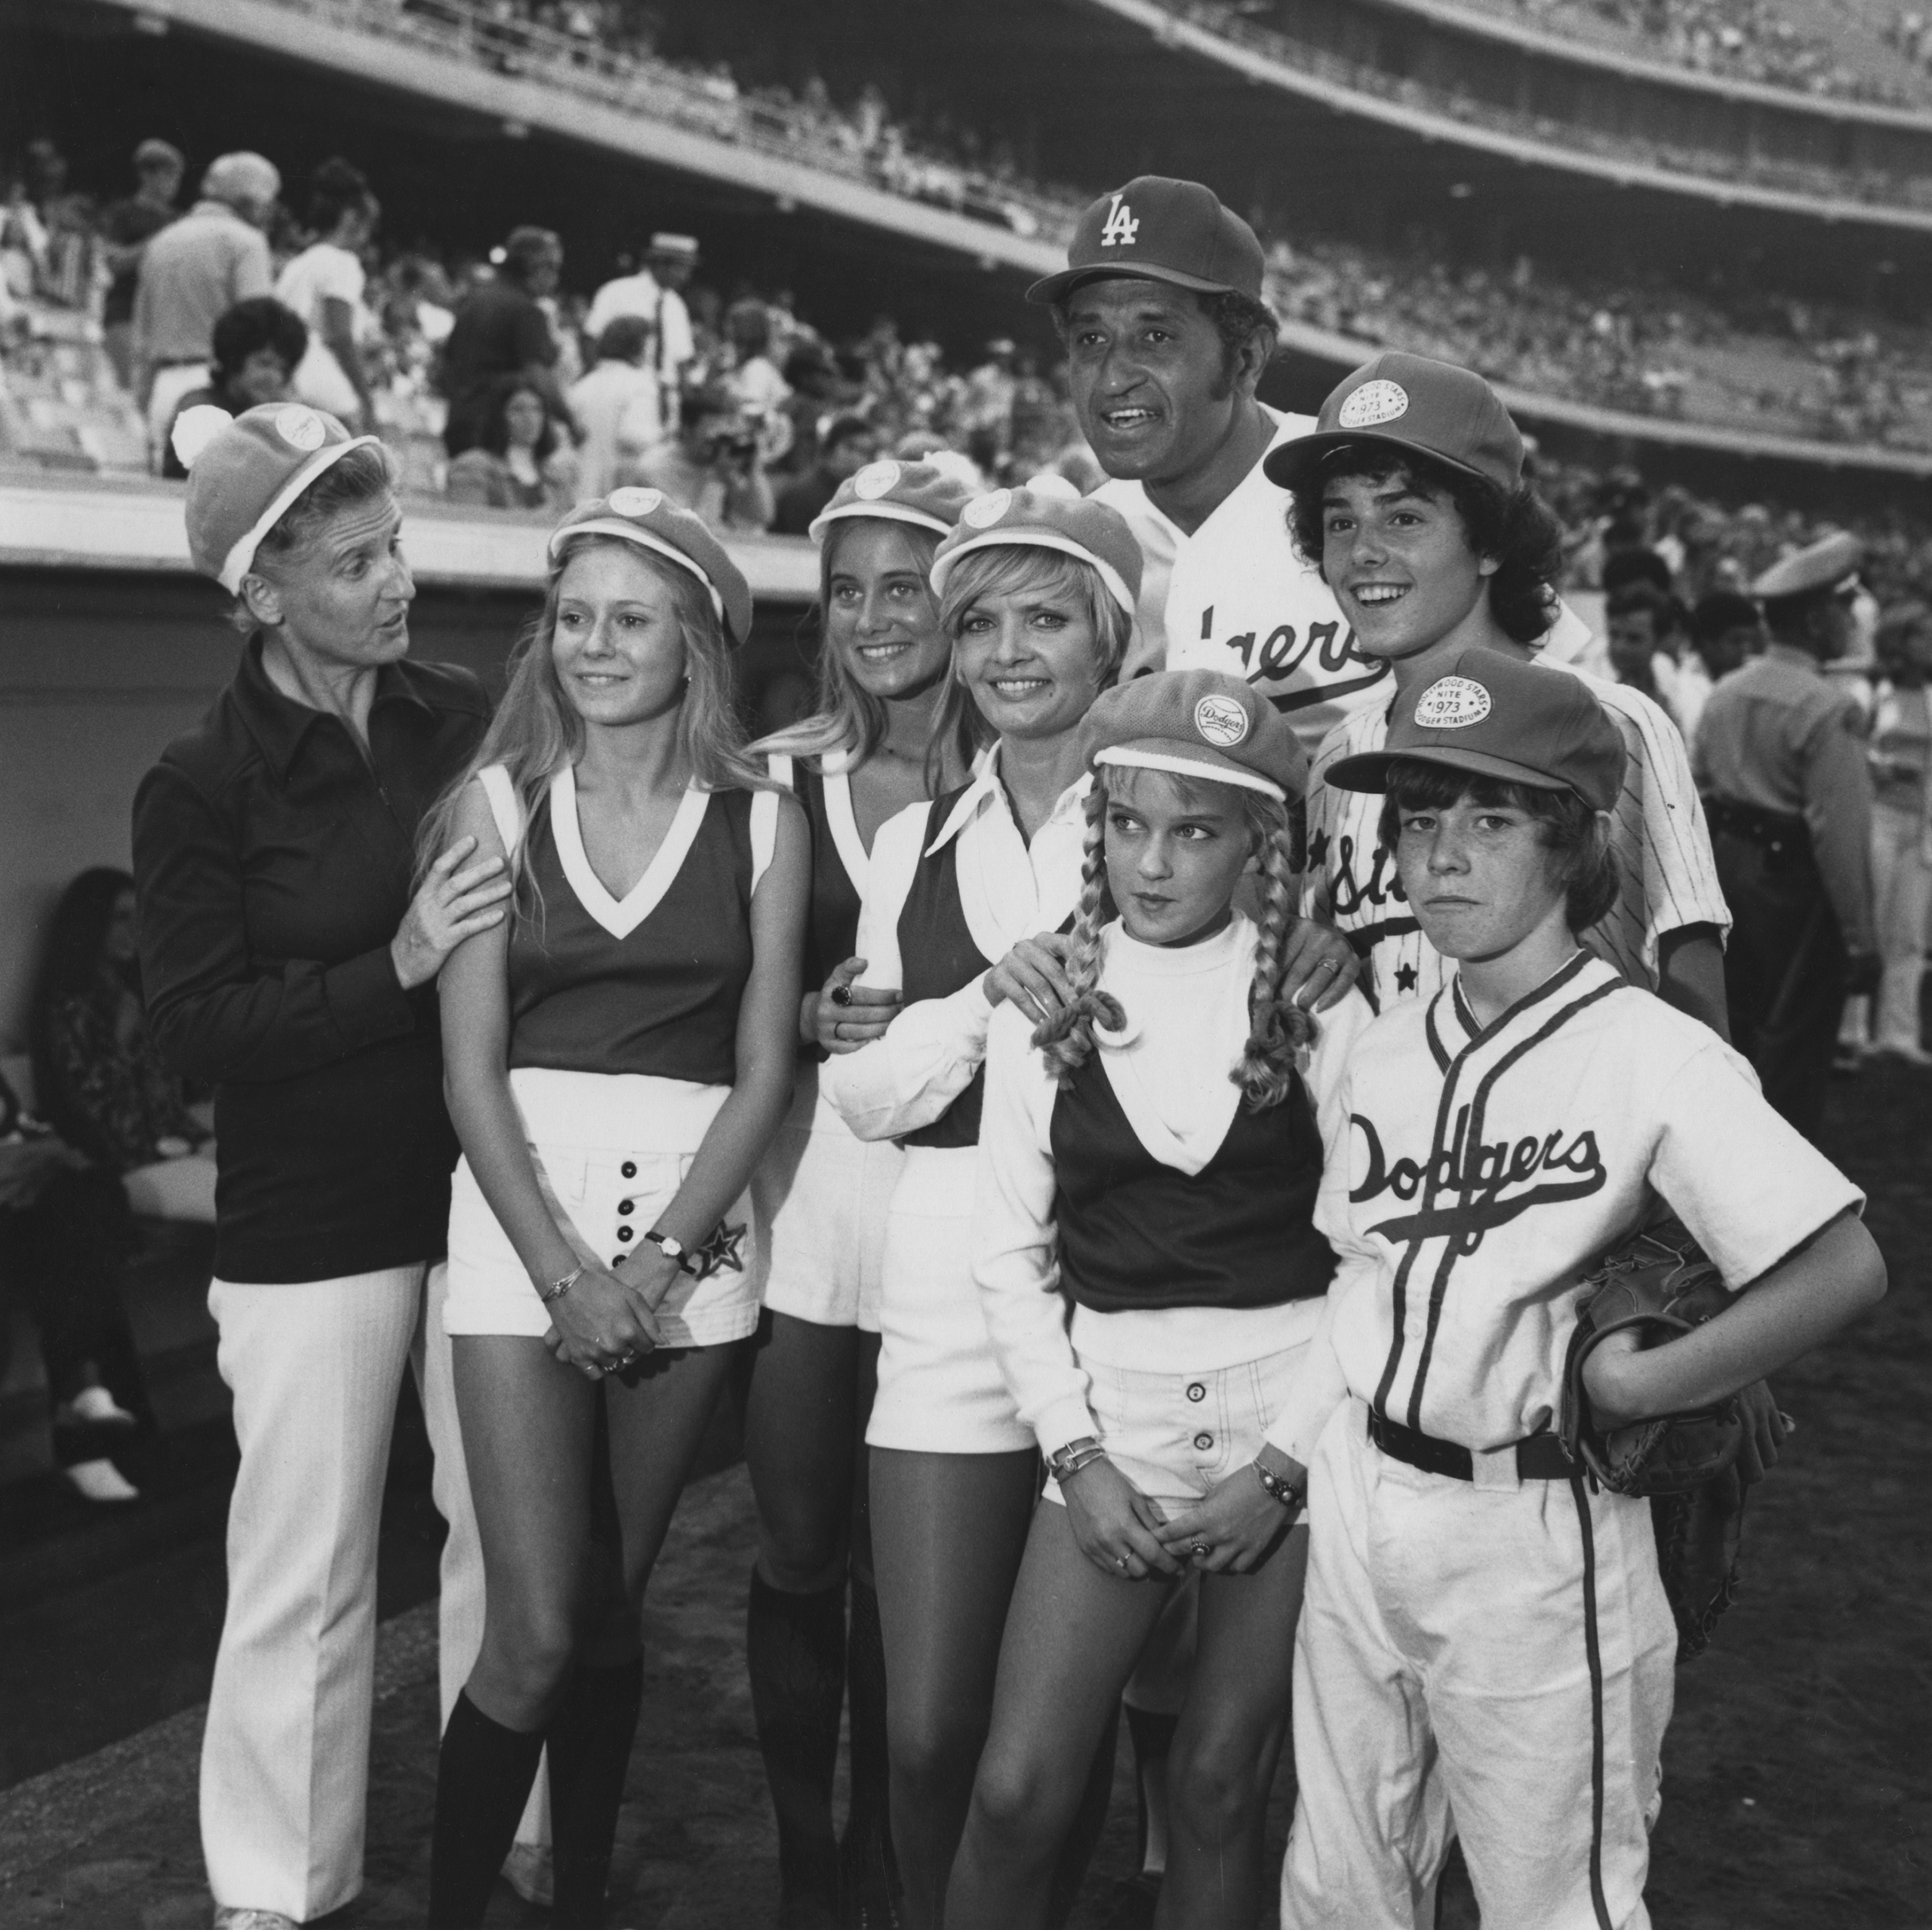 American baseball player Don Newcombe (back, centre) with the cast of the US TV sitcom 'The Brady Bunch', at a charity baseball game at Dodger Stadium, in Los Angeles, in 1973.